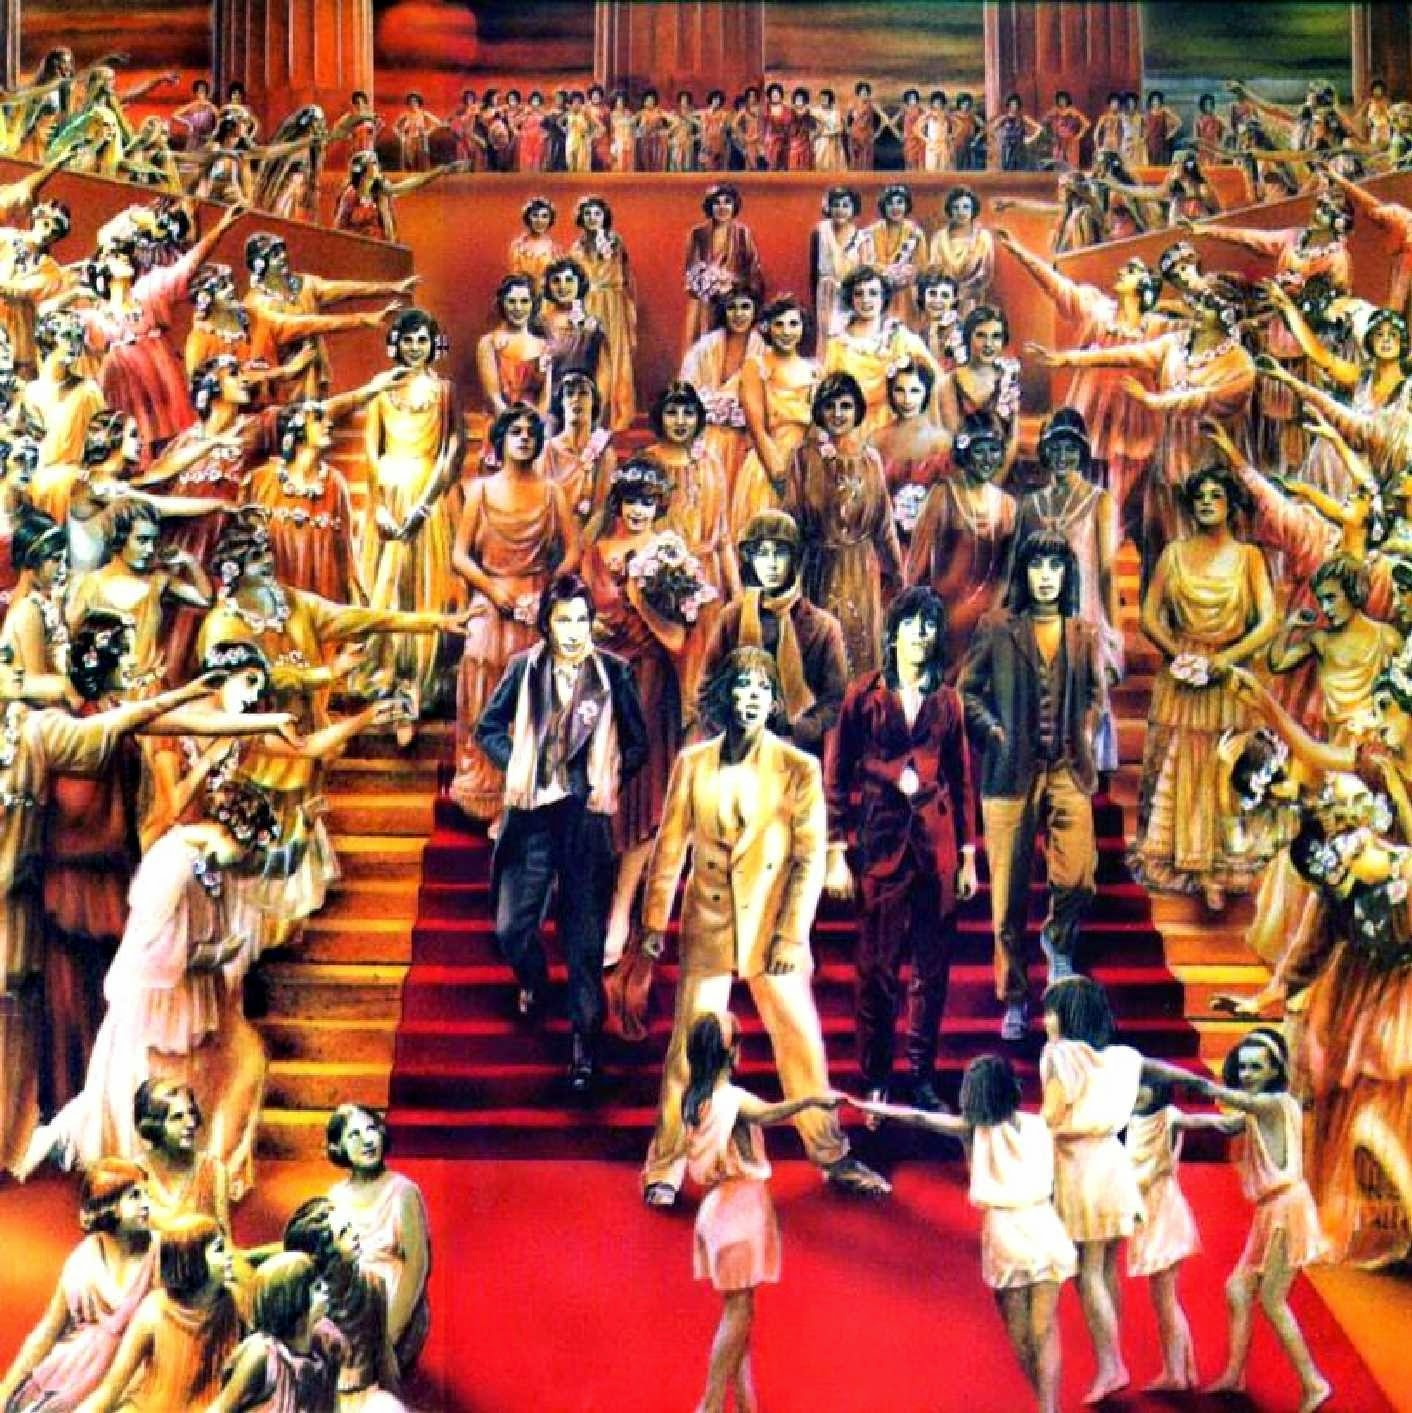 The Rolling Stones - It's only rock 'n' roll (1974)  - a